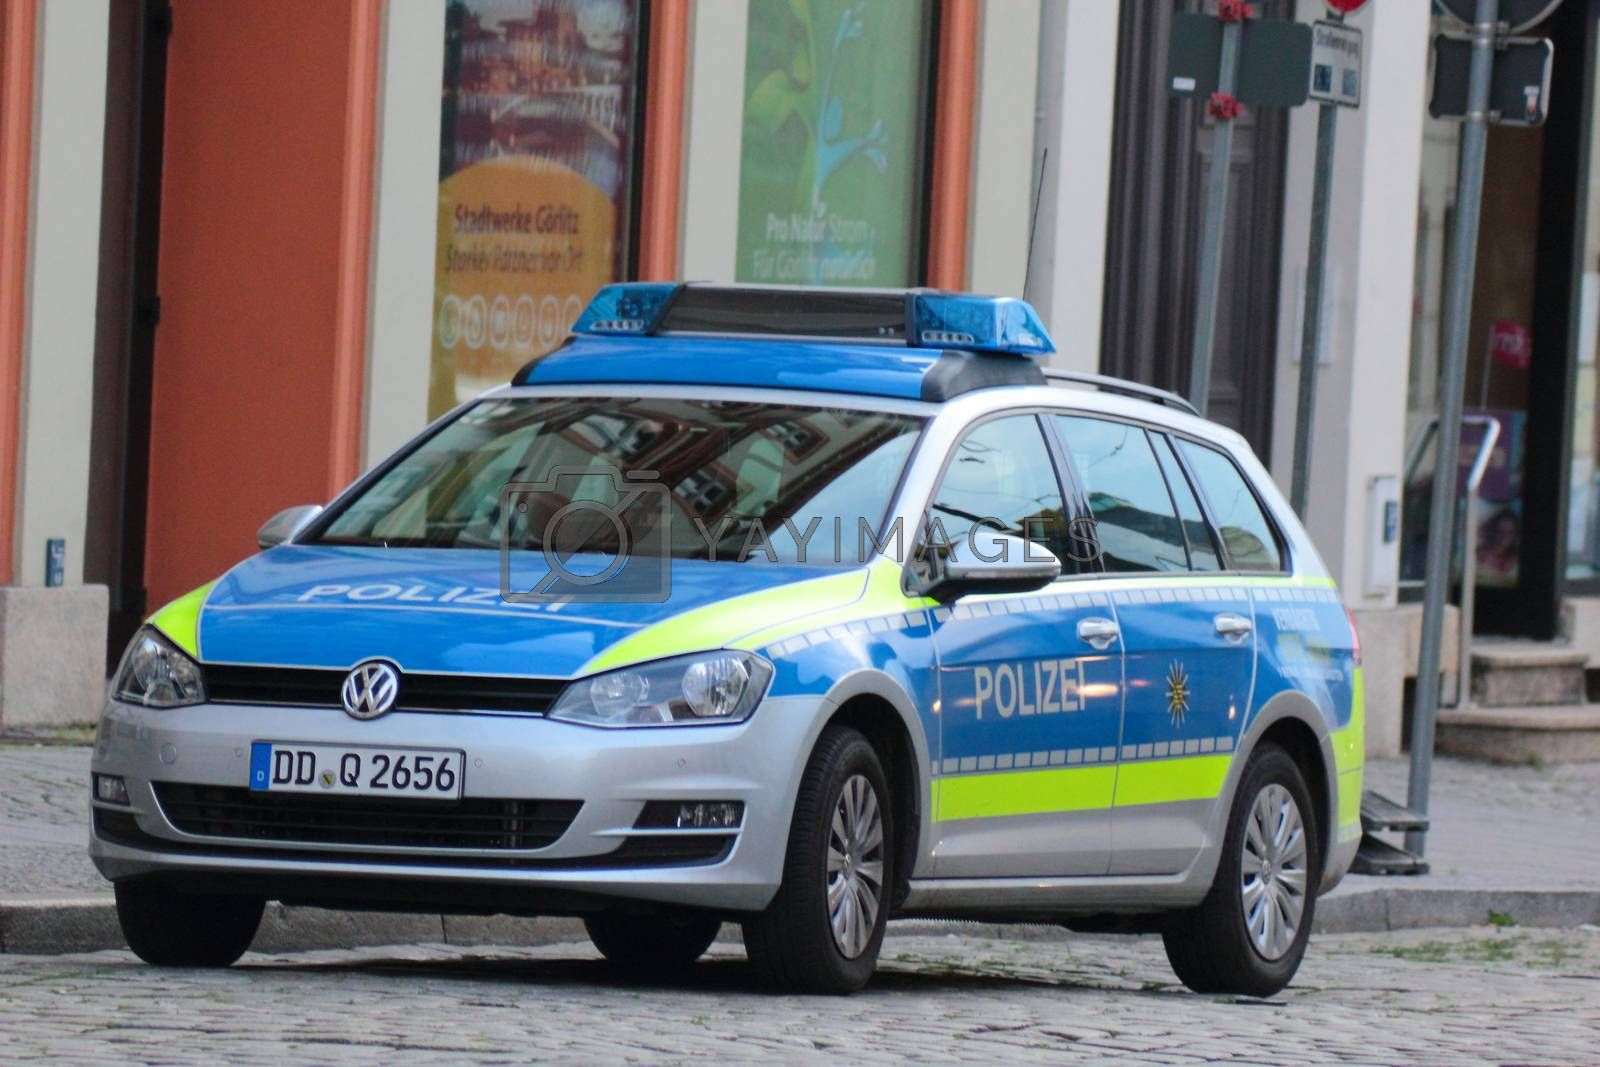 Royalty free image of Police in Germany by oxygen64